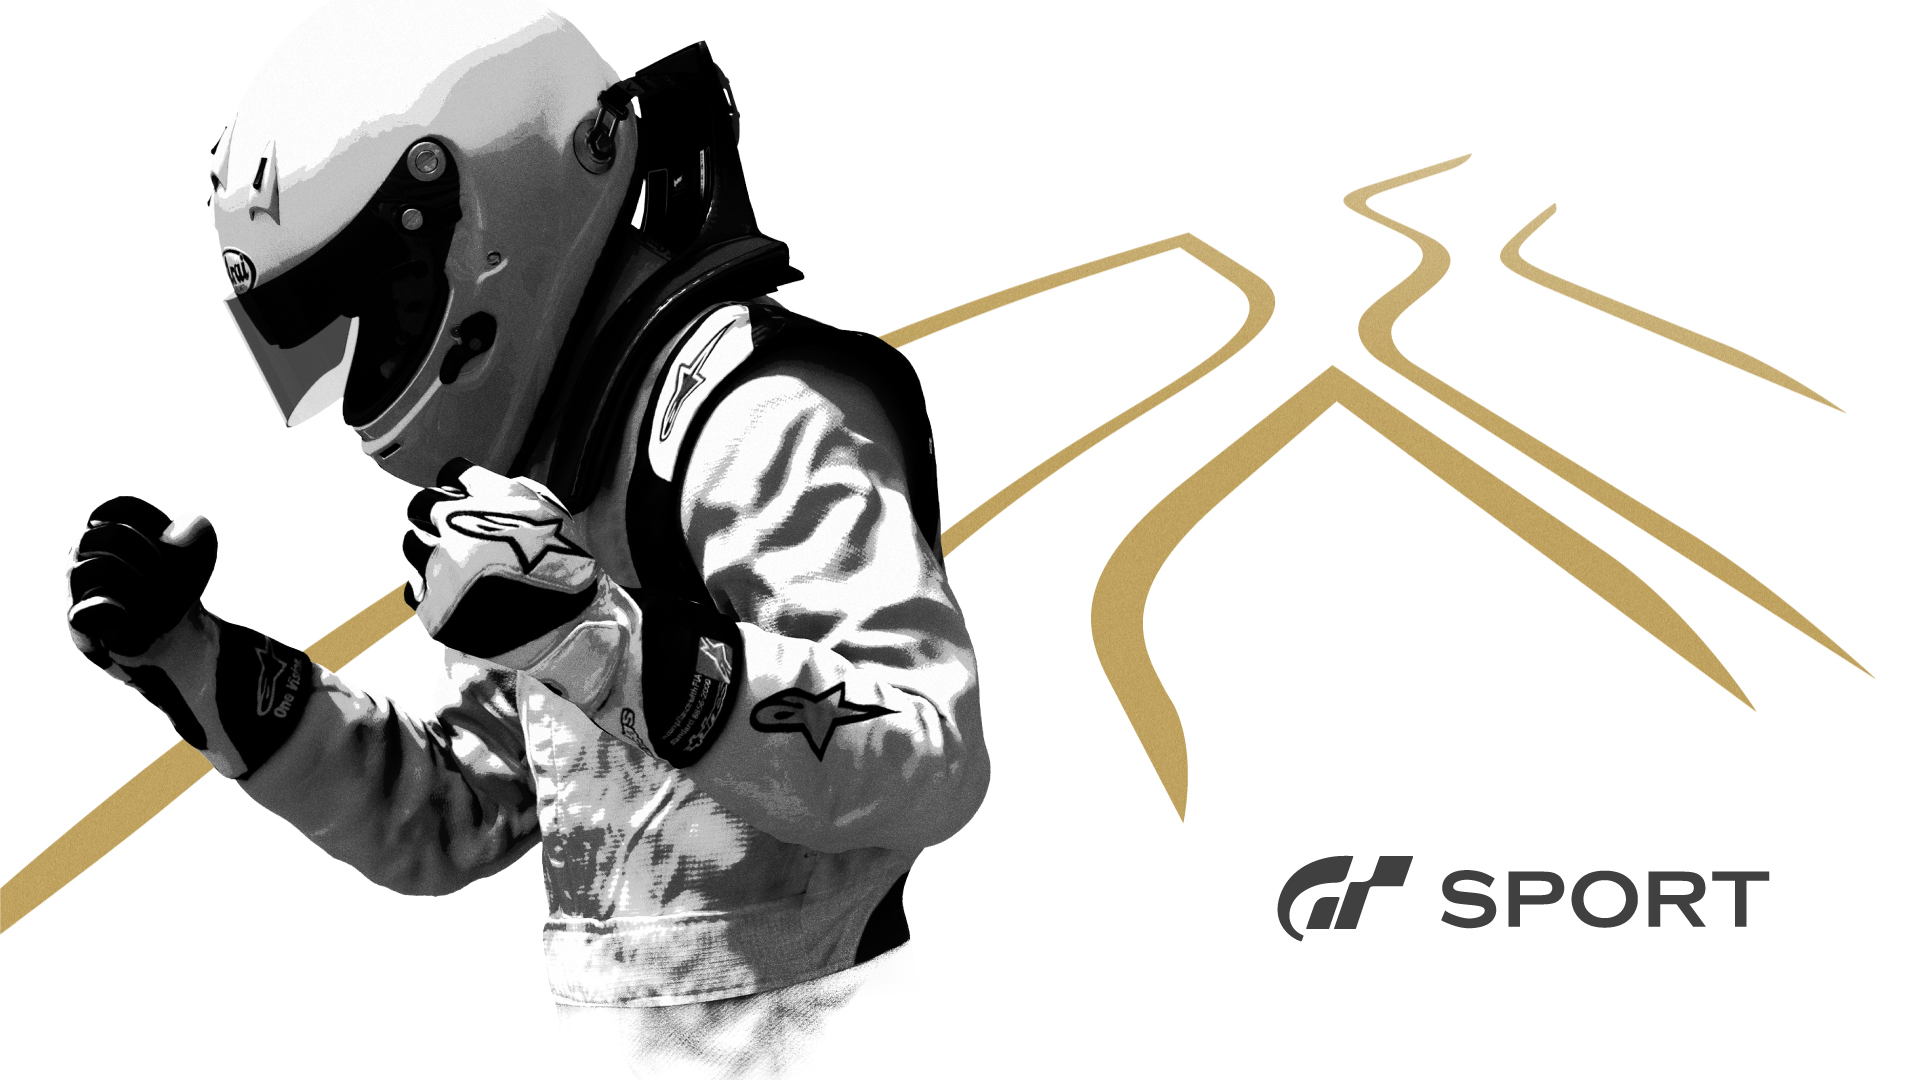 http://ucegamers.com.br/siteuceg/wp-content/uploads/2015/12/Gran-Turismo-Sport.jpg